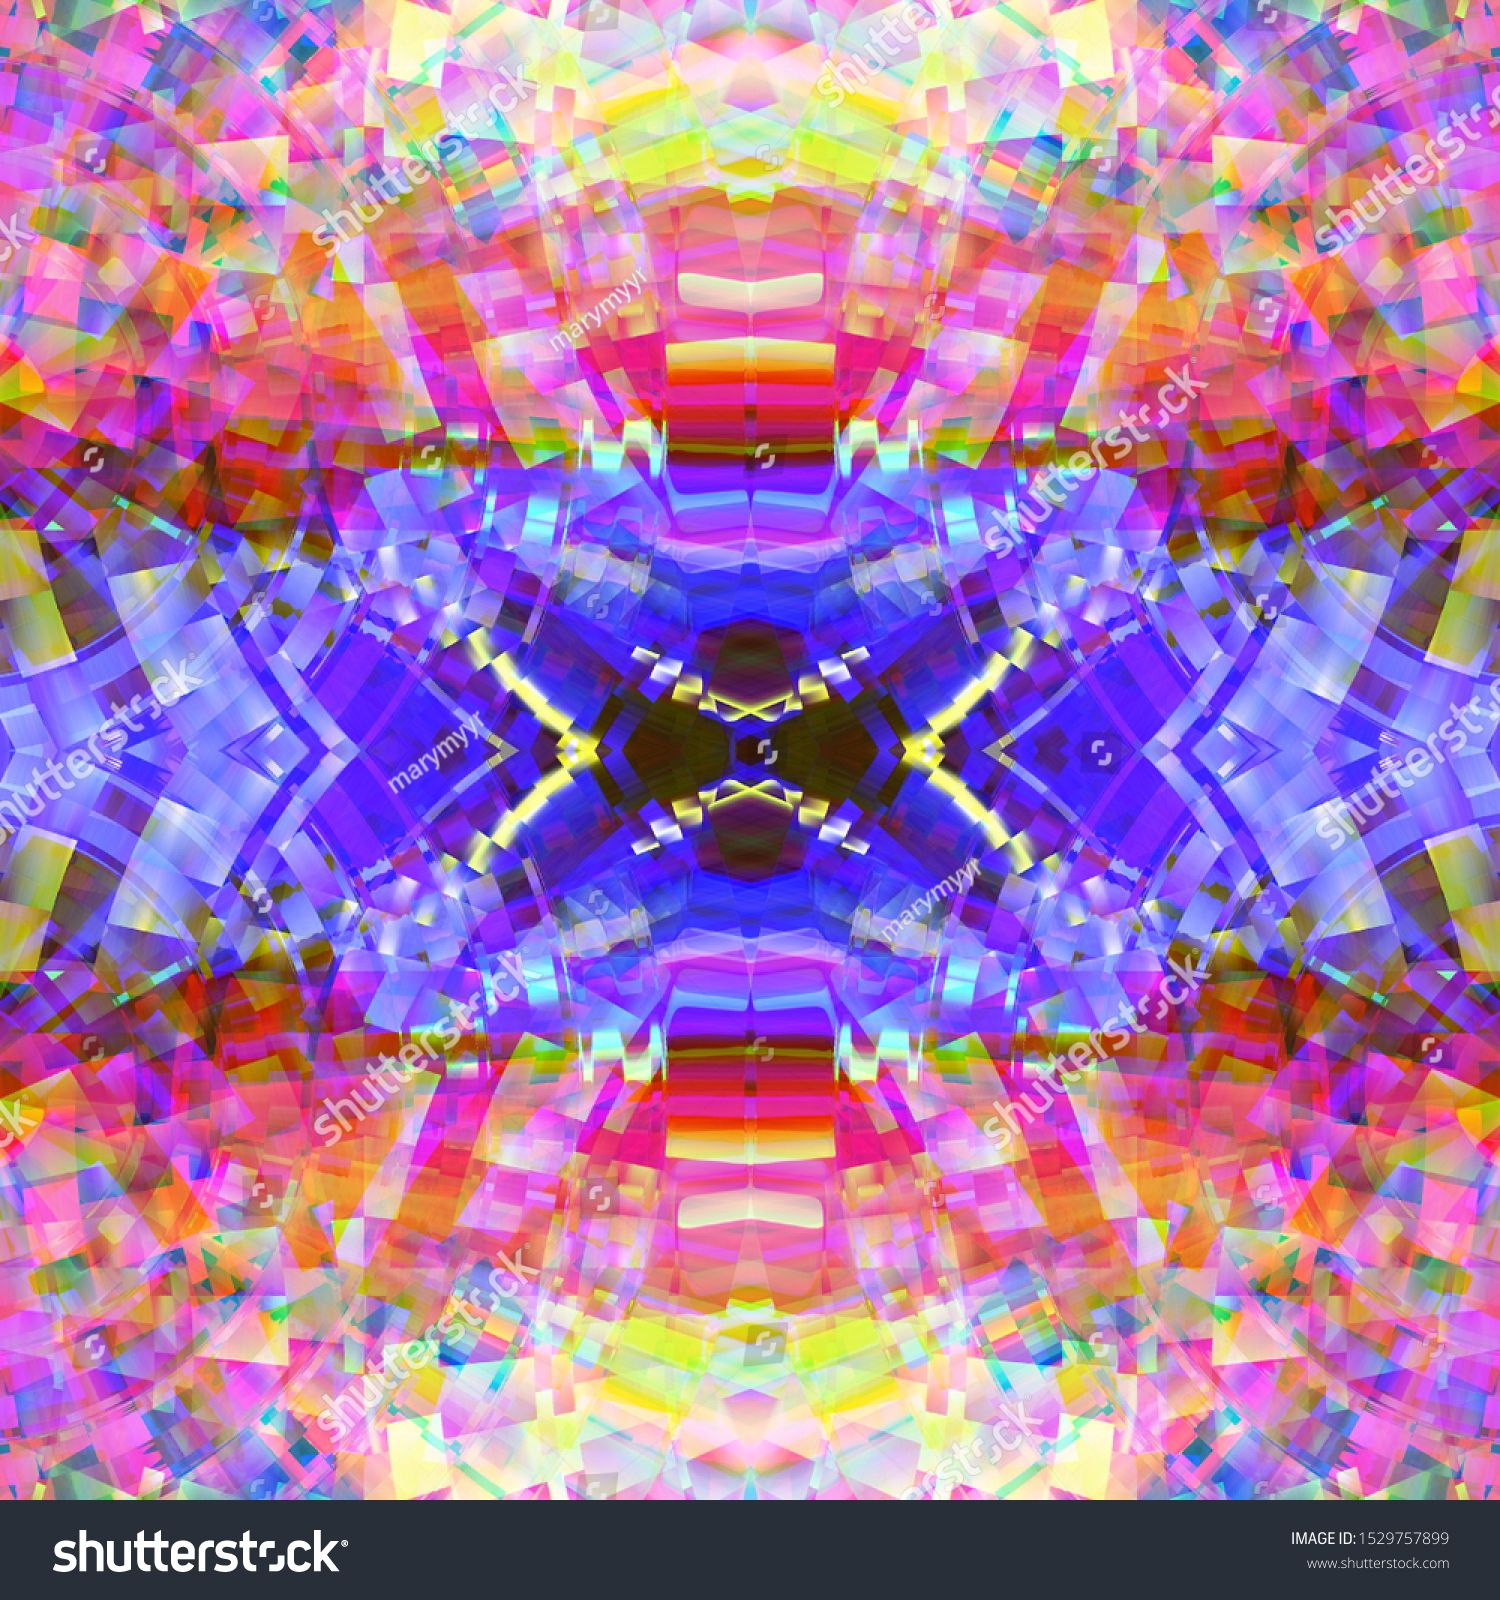 Light effects. Symmetry and reflection. Festive decoration. Abstract blurred background. Glowing texture. Shining pattern. #Ad , #Aff, #reflection#Festive#decoration#Light